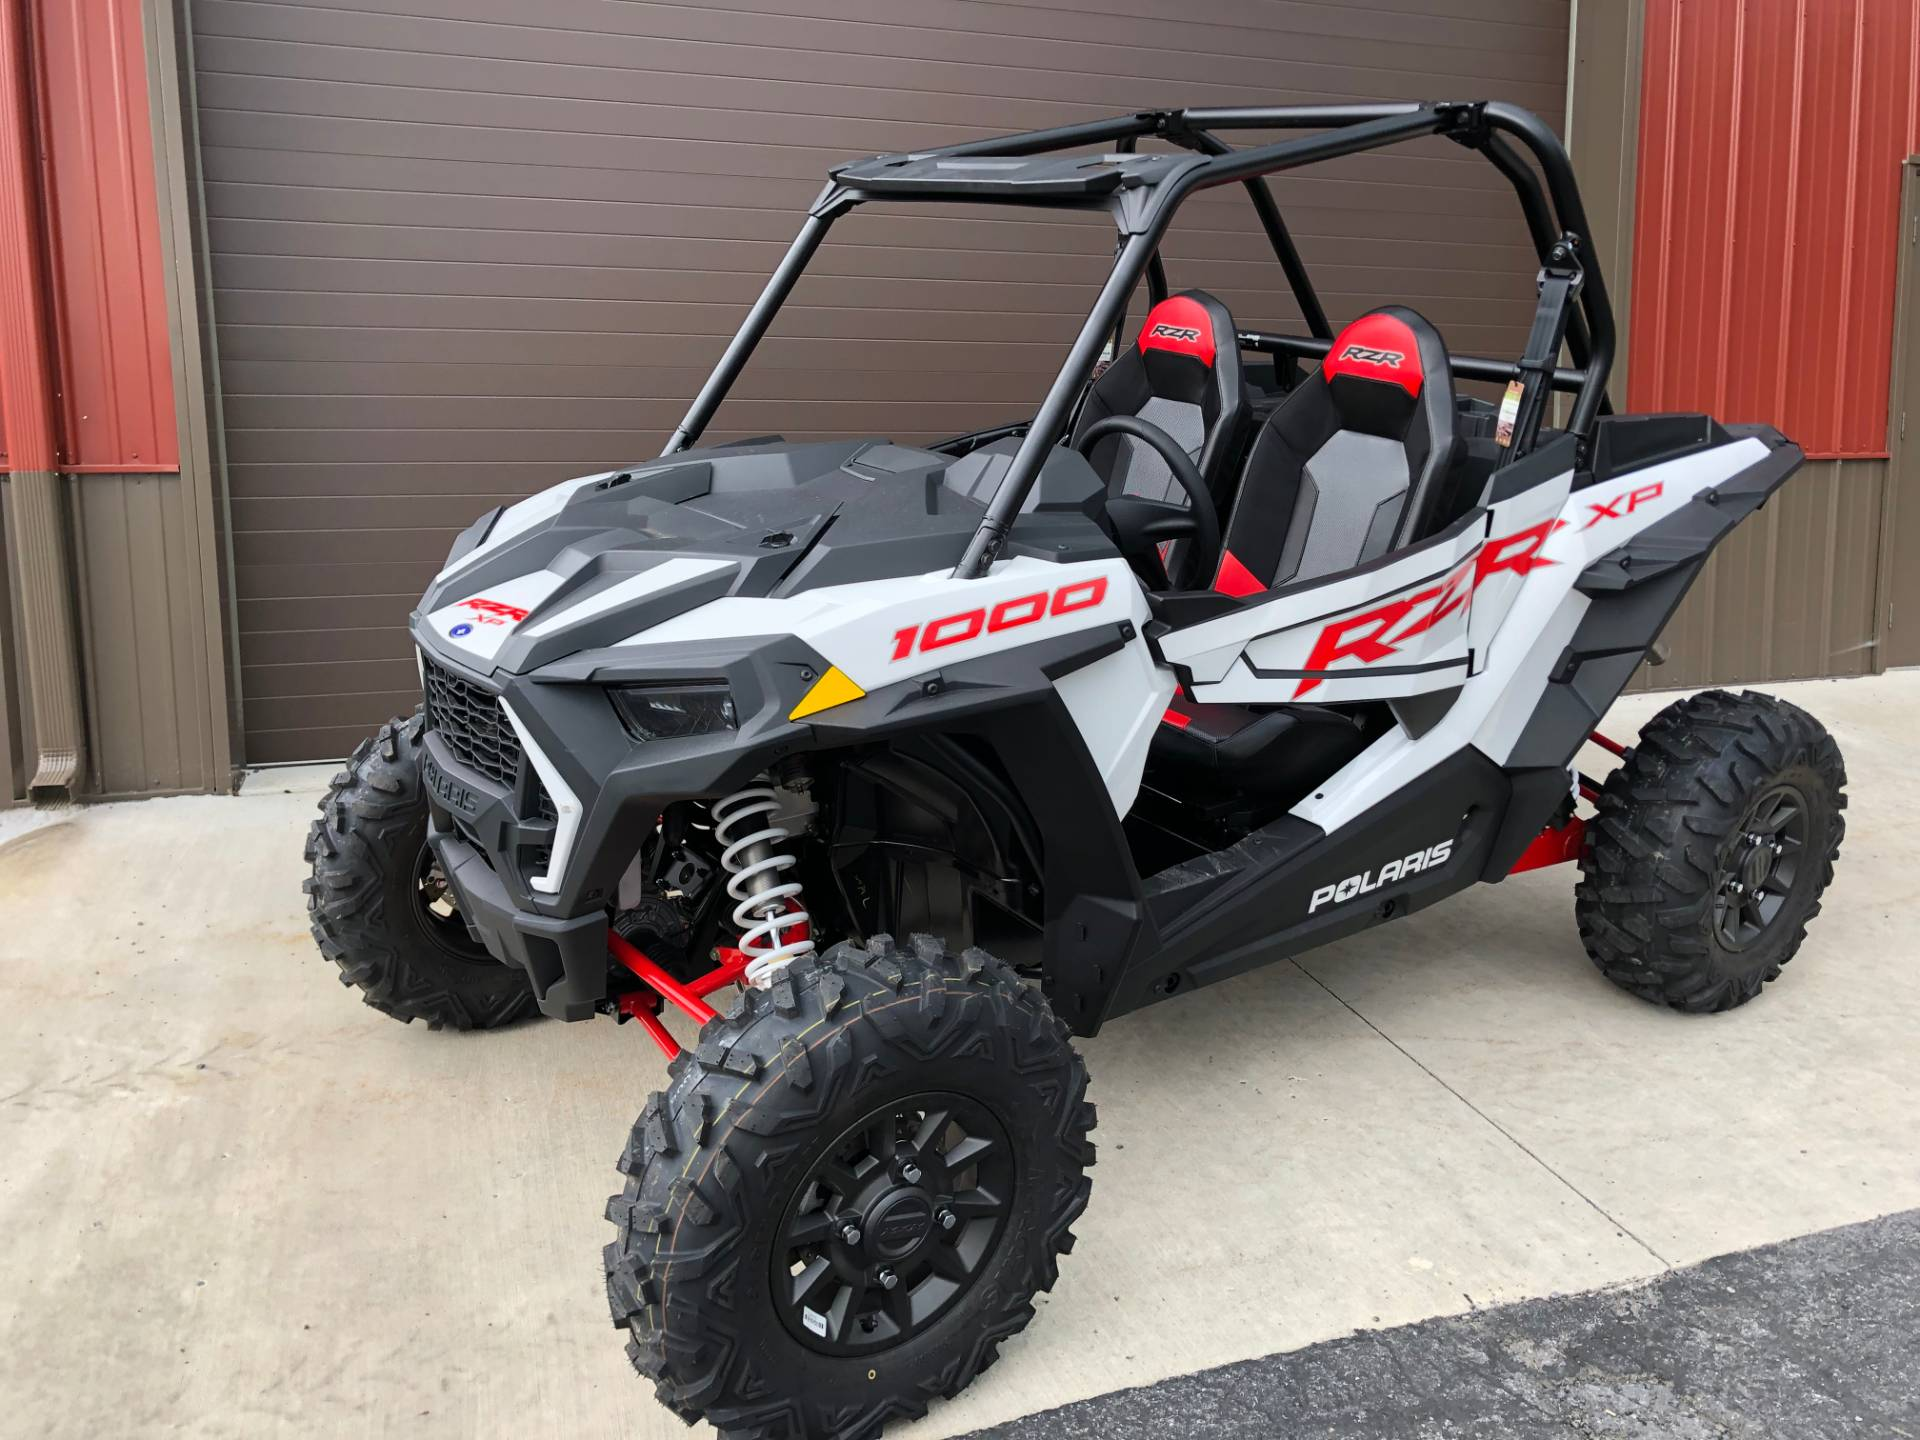 2020 Polaris RZR XP 1000 in Tyrone, Pennsylvania - Photo 4